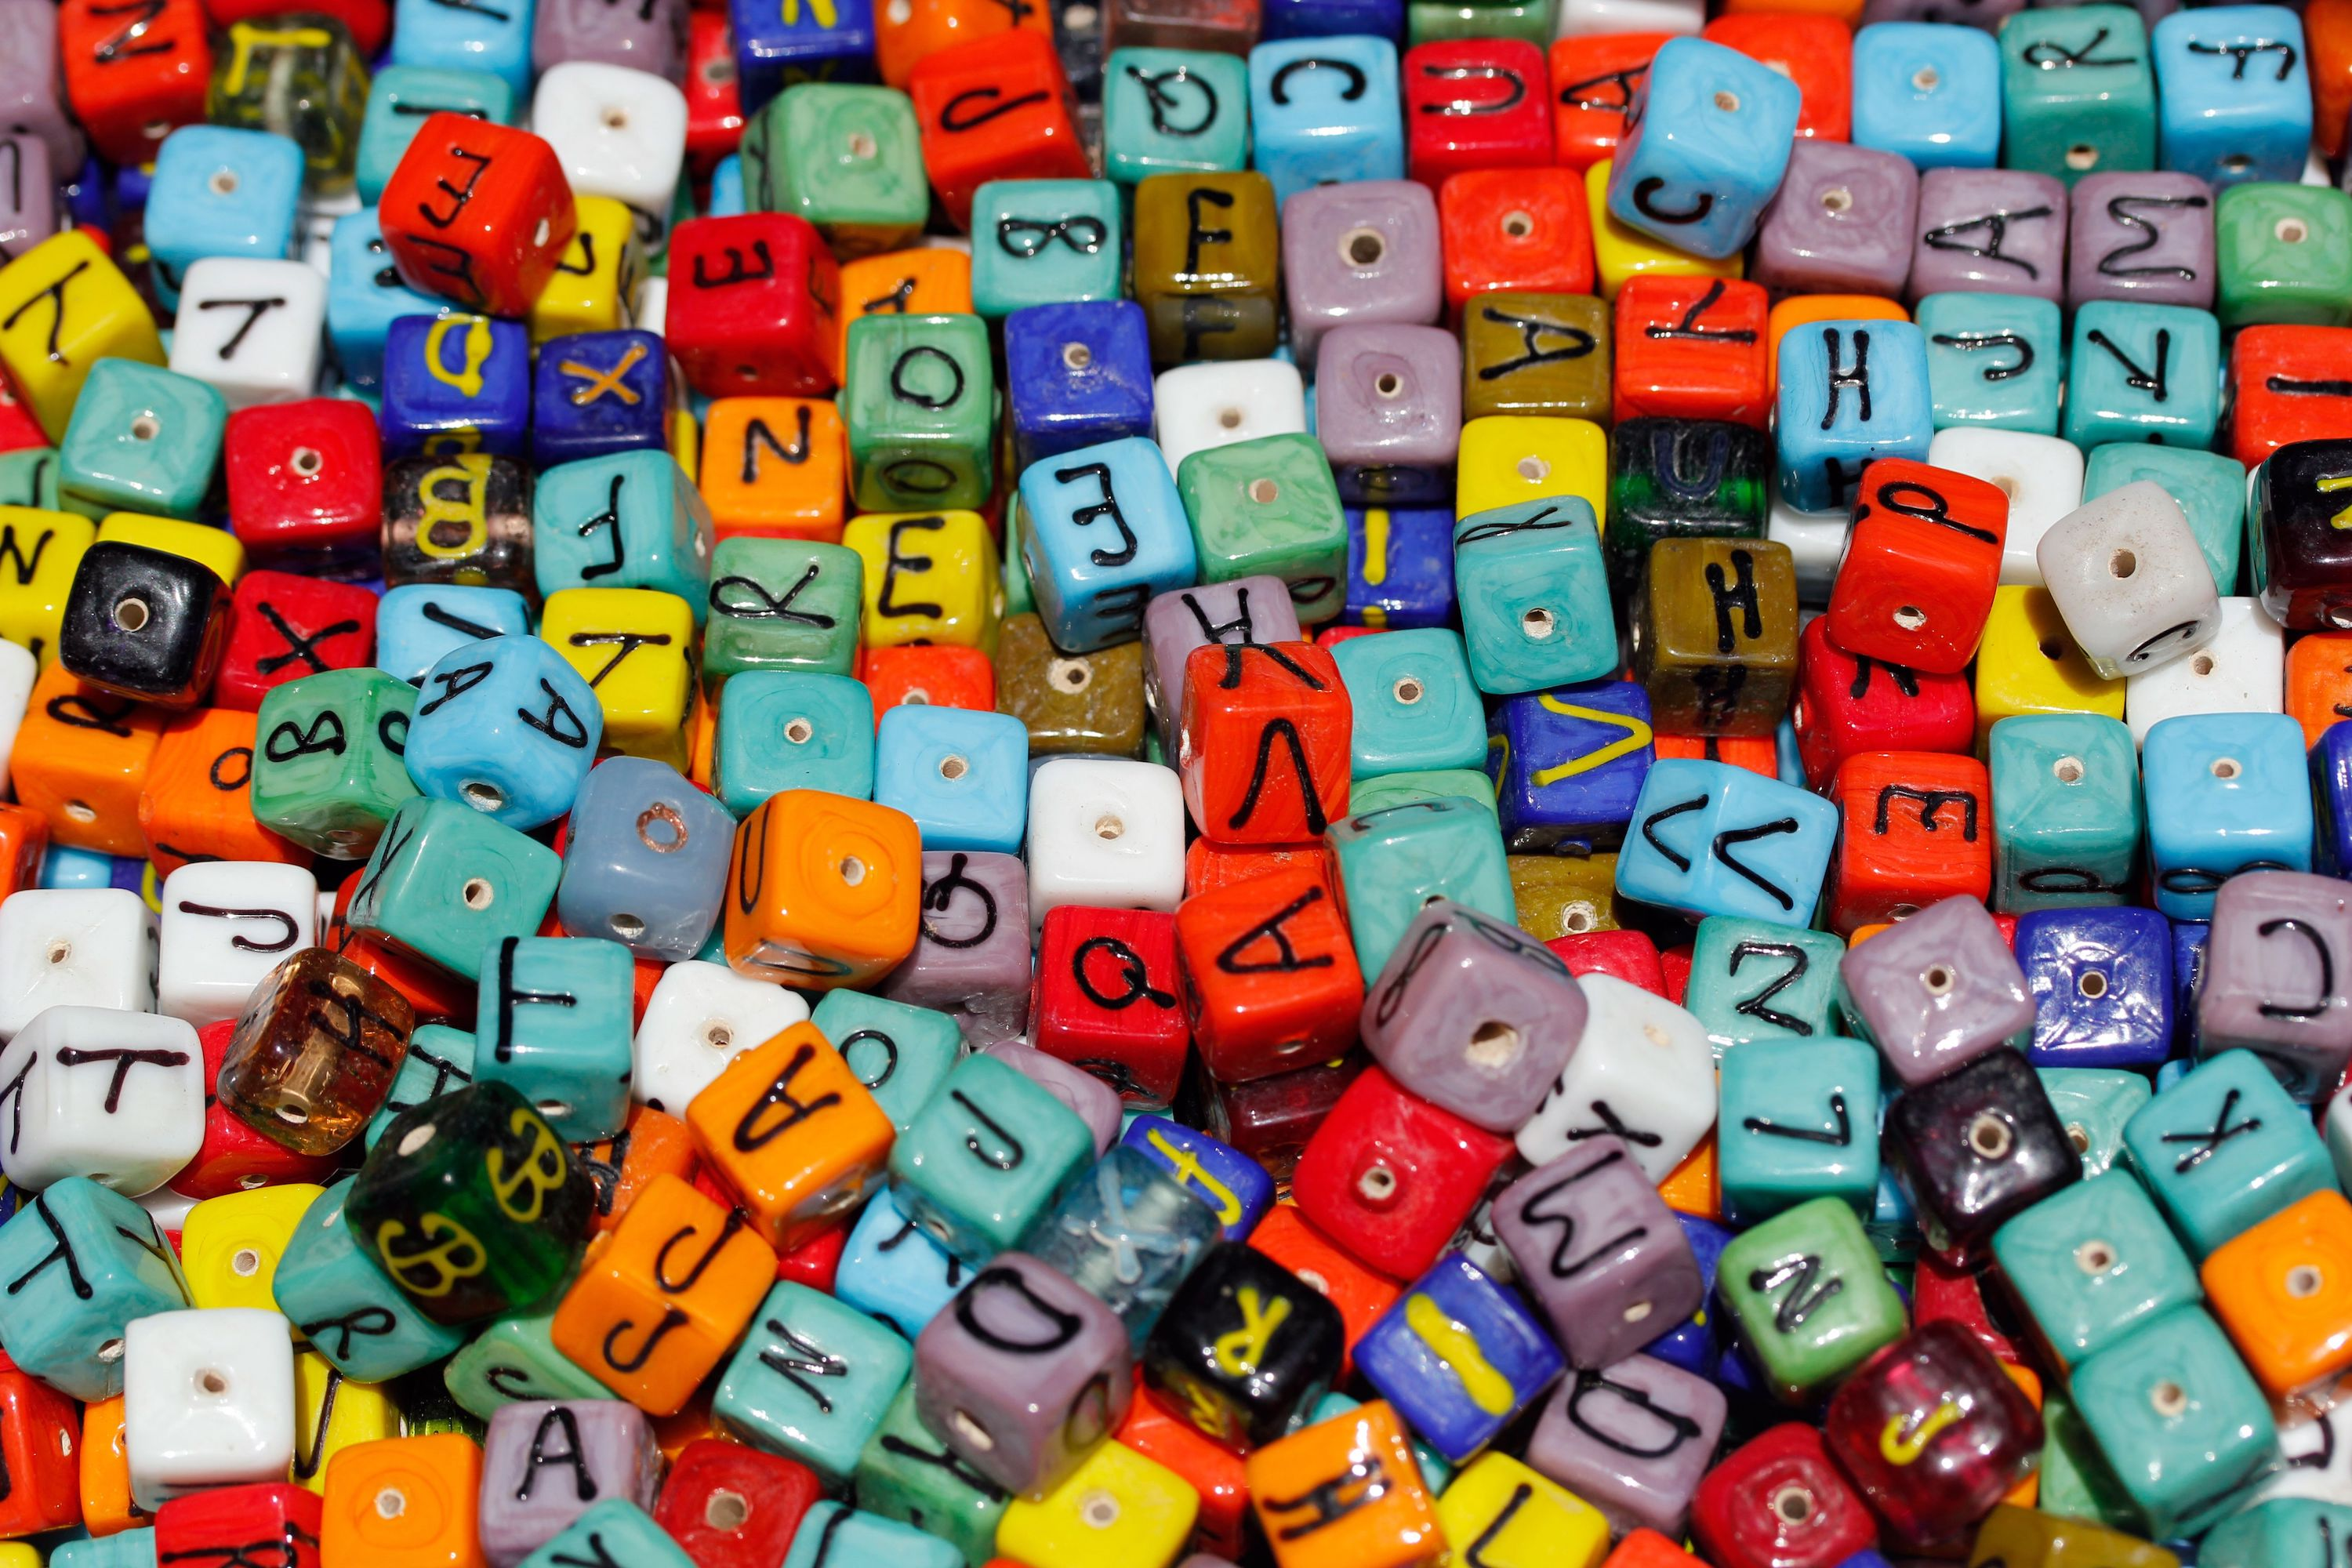 Algorithm: How to find the next lexicographic permutation